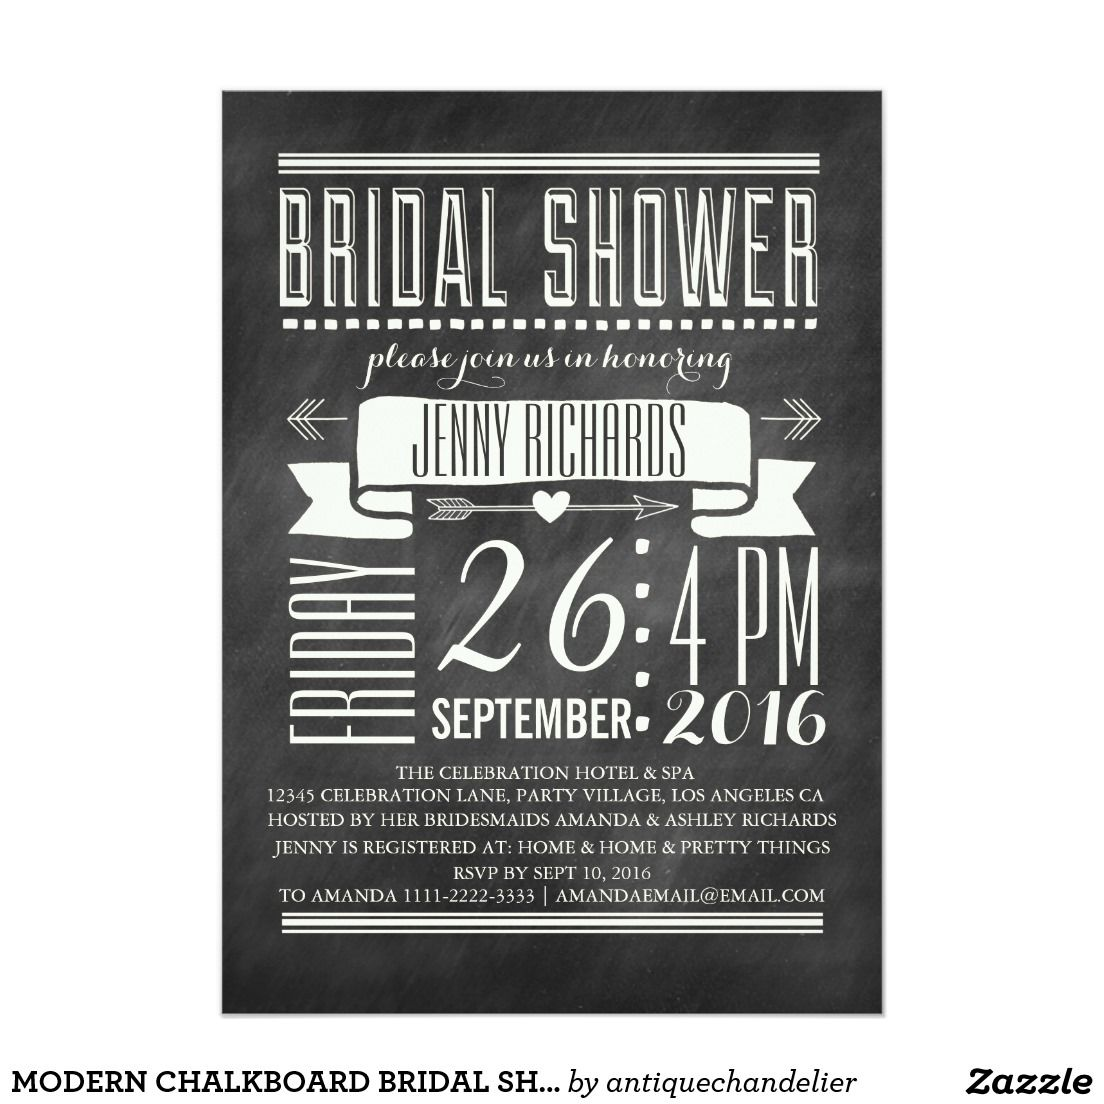 Modern Chalkboard Bridal Shower Invitation  Chalkboard Bridal